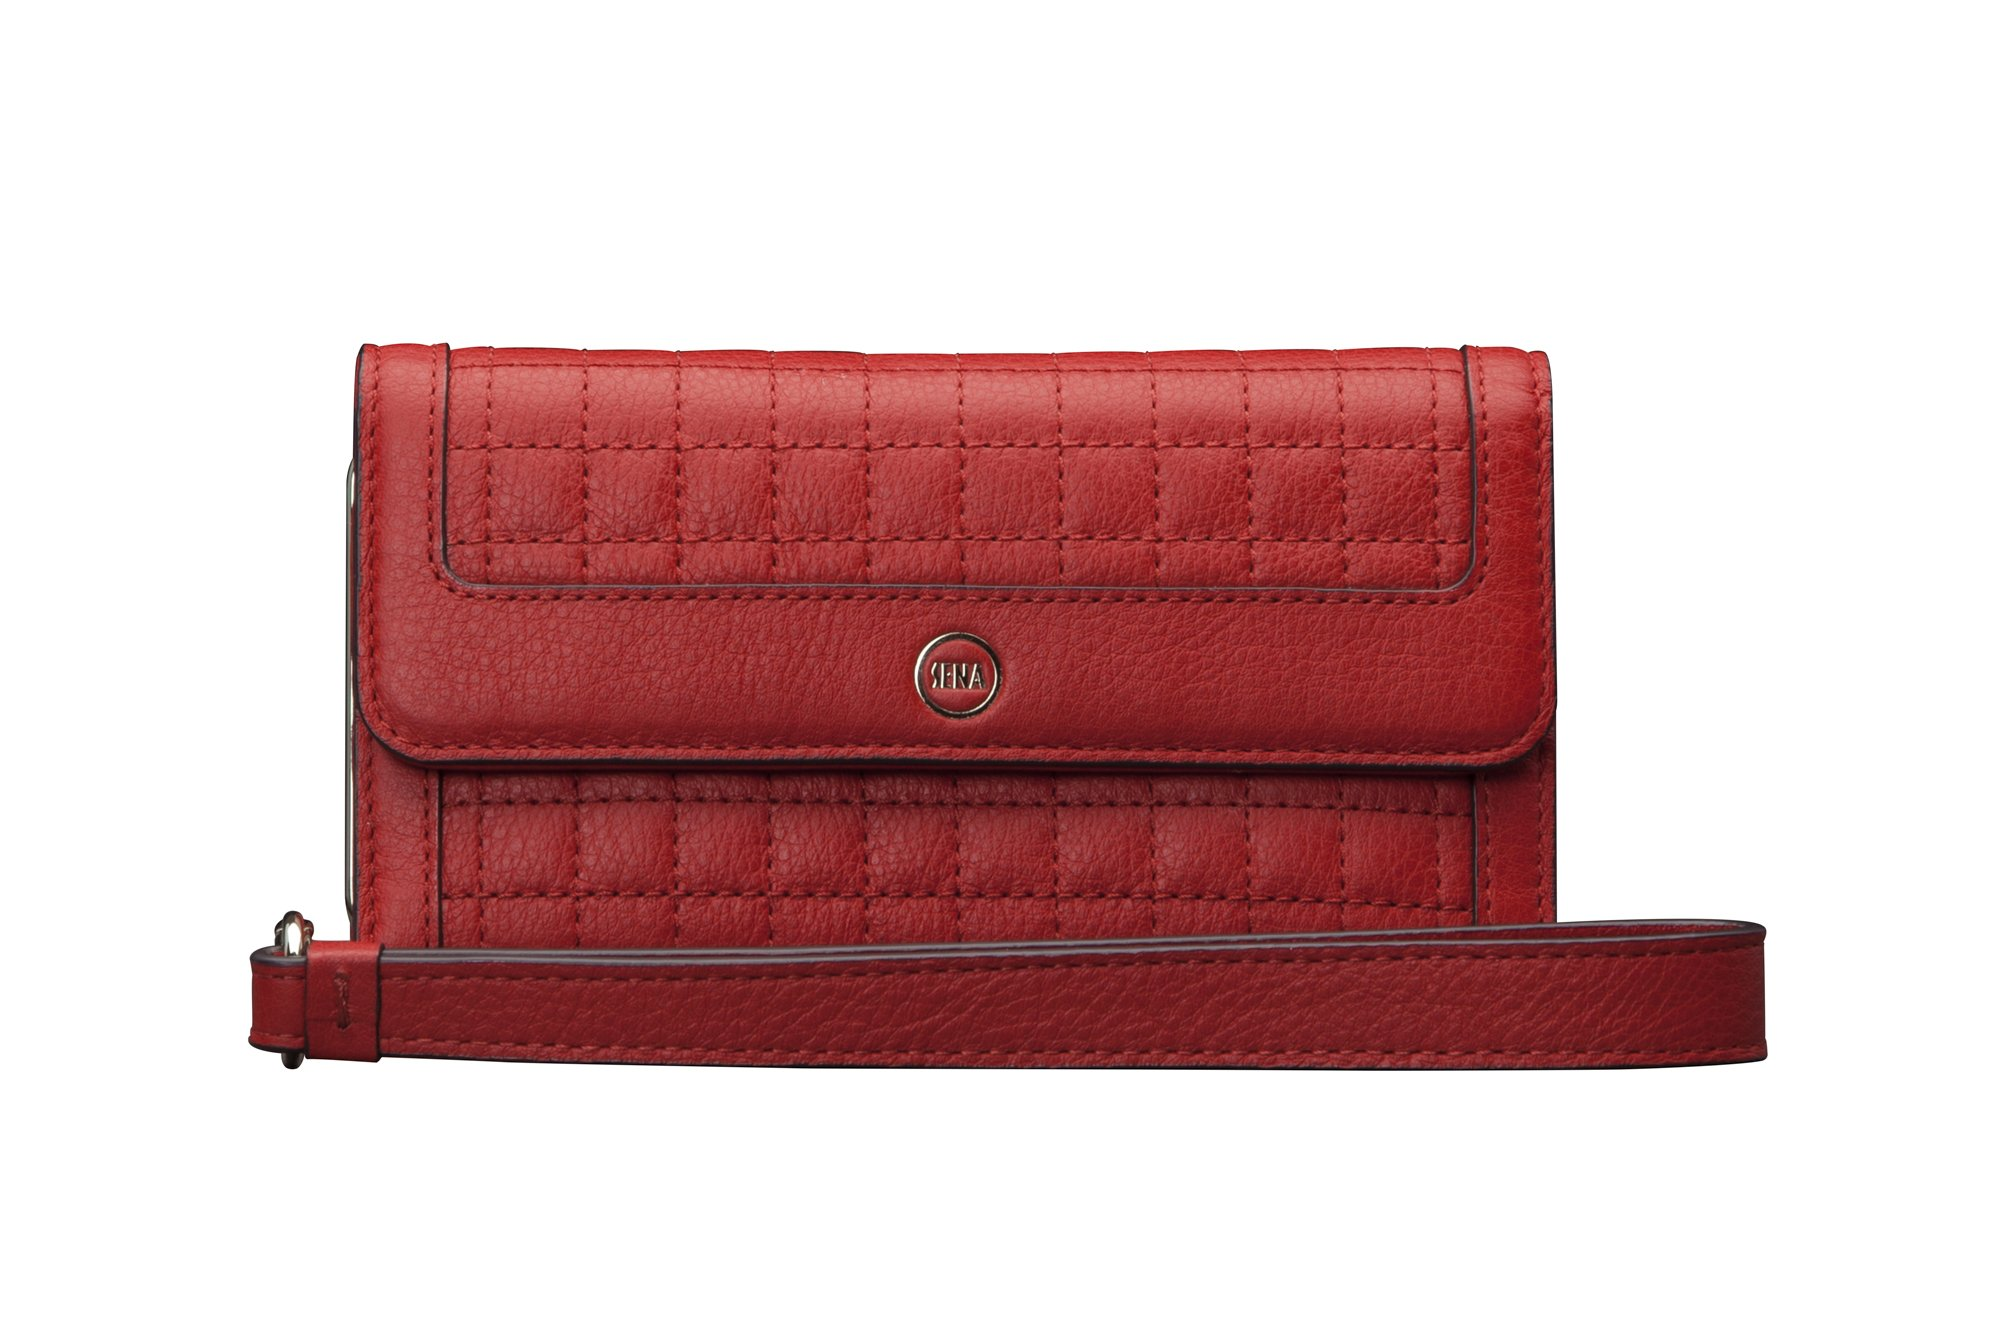 Sena Cases Genuine Leather Isa Wallet Clutch for Iphone 7, Iphone 6/6S (Red) by Sena Cases (Image #1)